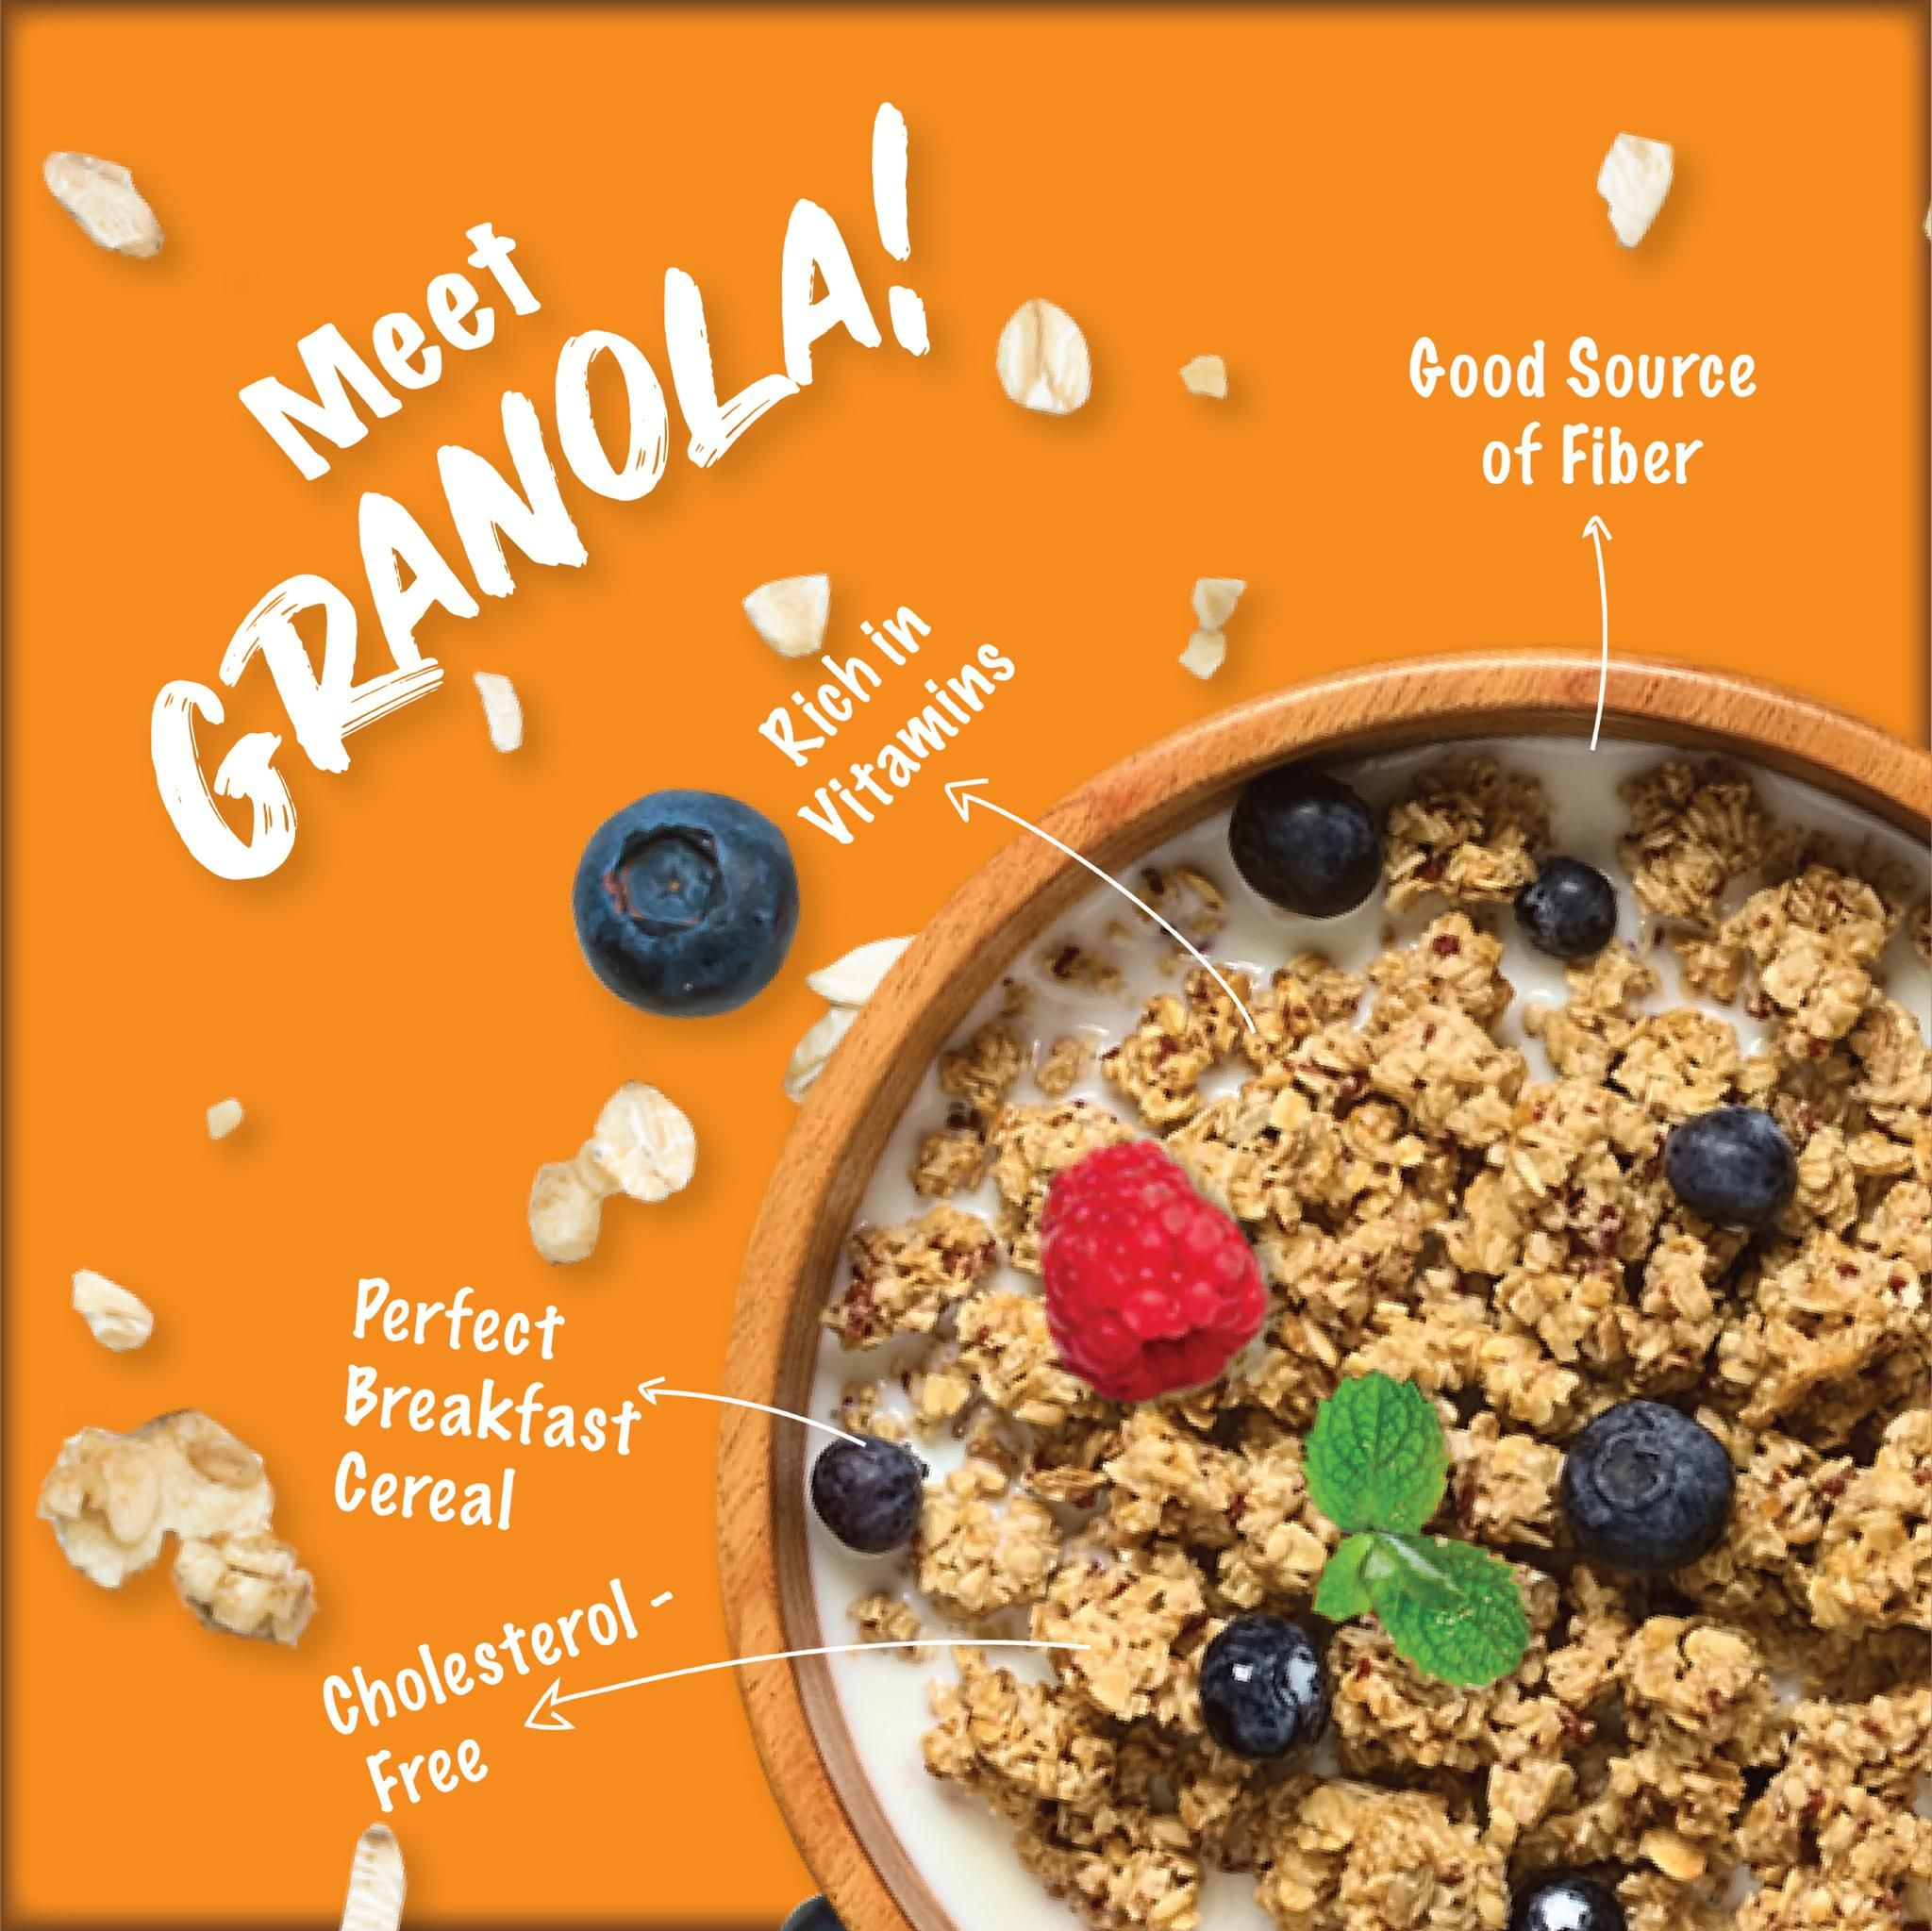 Say Hello to 3 Amazingly Delicious Flavours of Granola - #HolaGranola